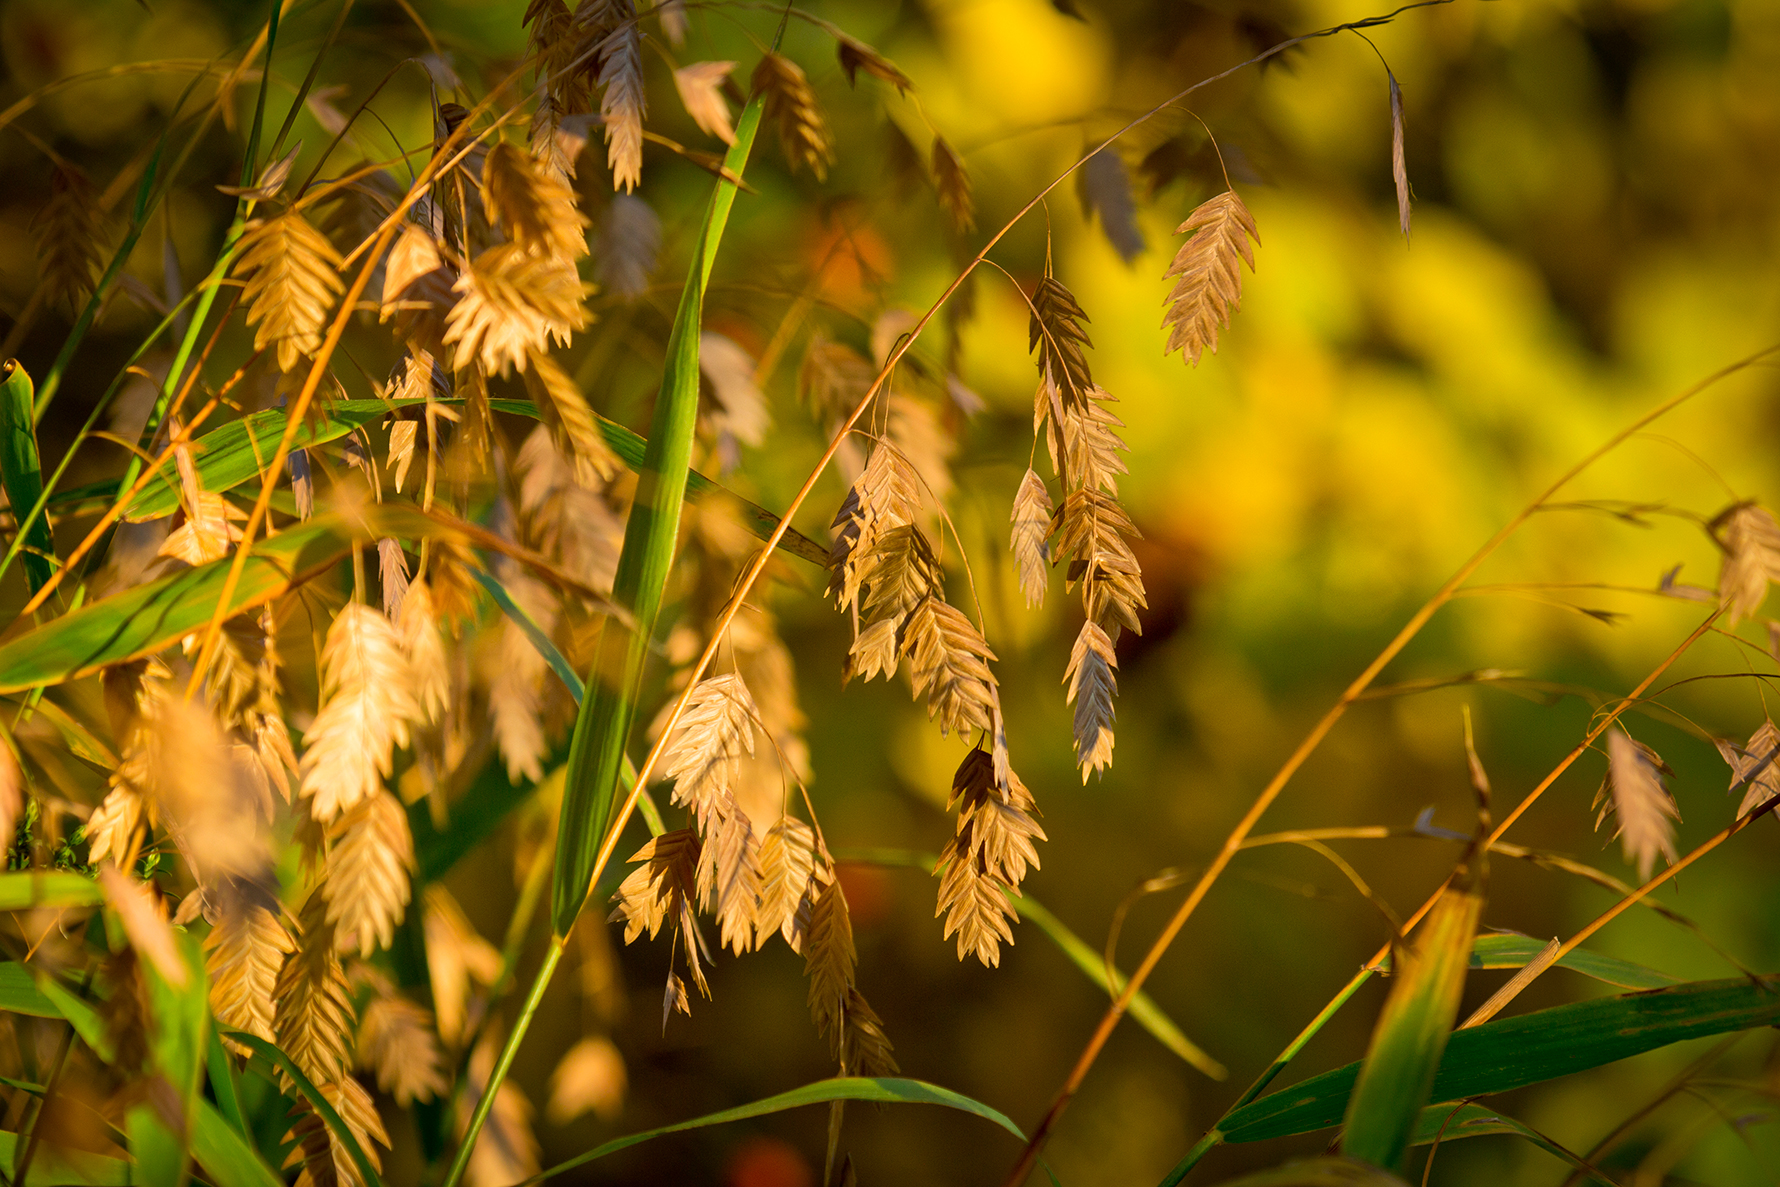 Drooping, golden leaves